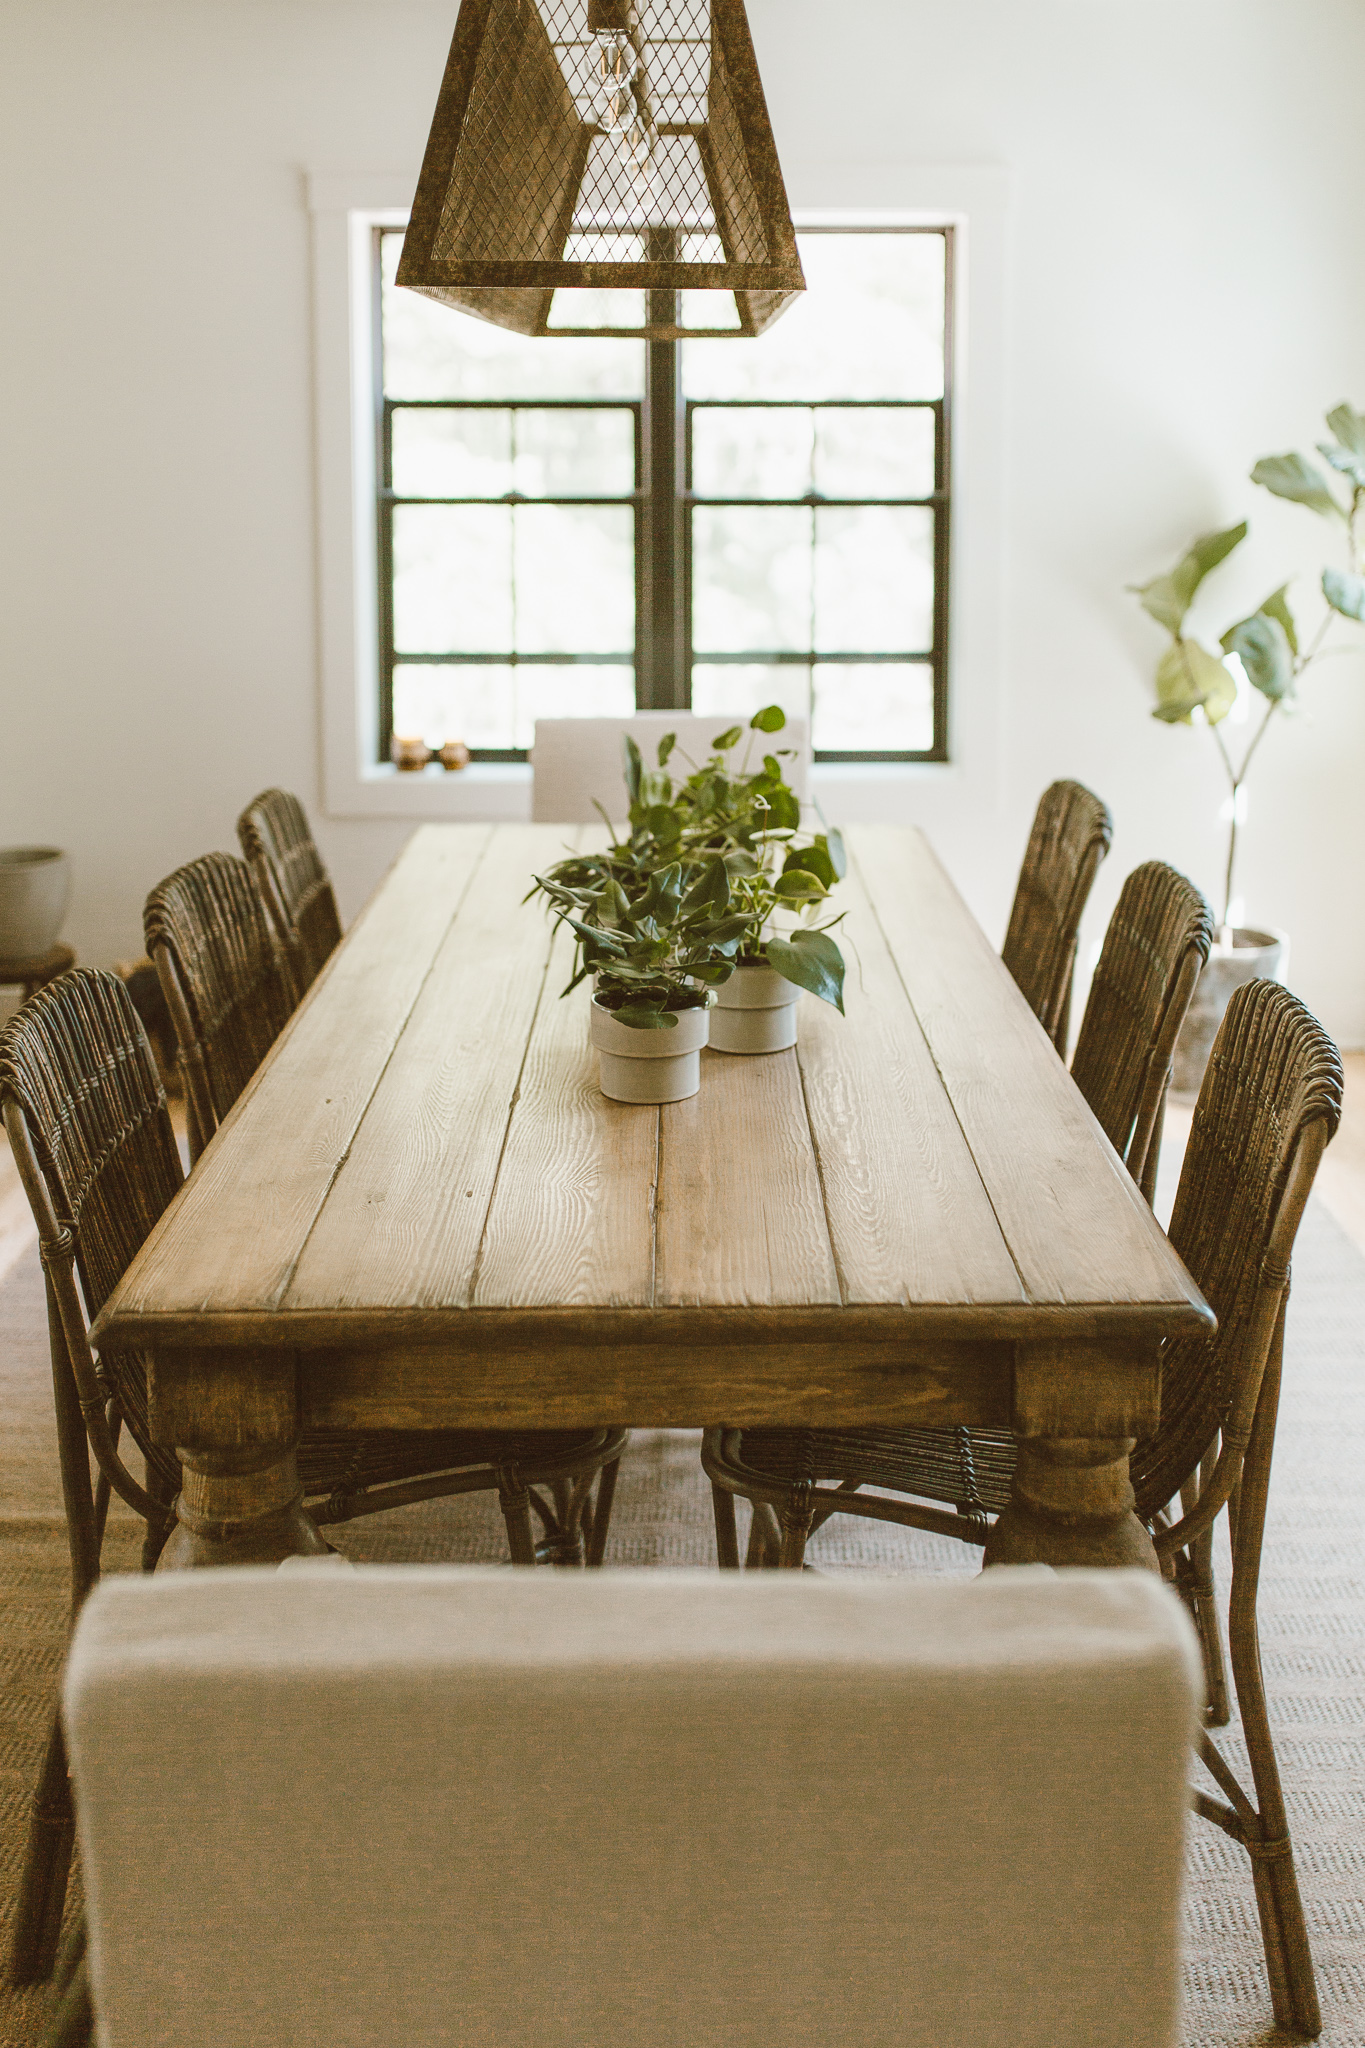 design-dining-space-tips-forthehome-002.jpg